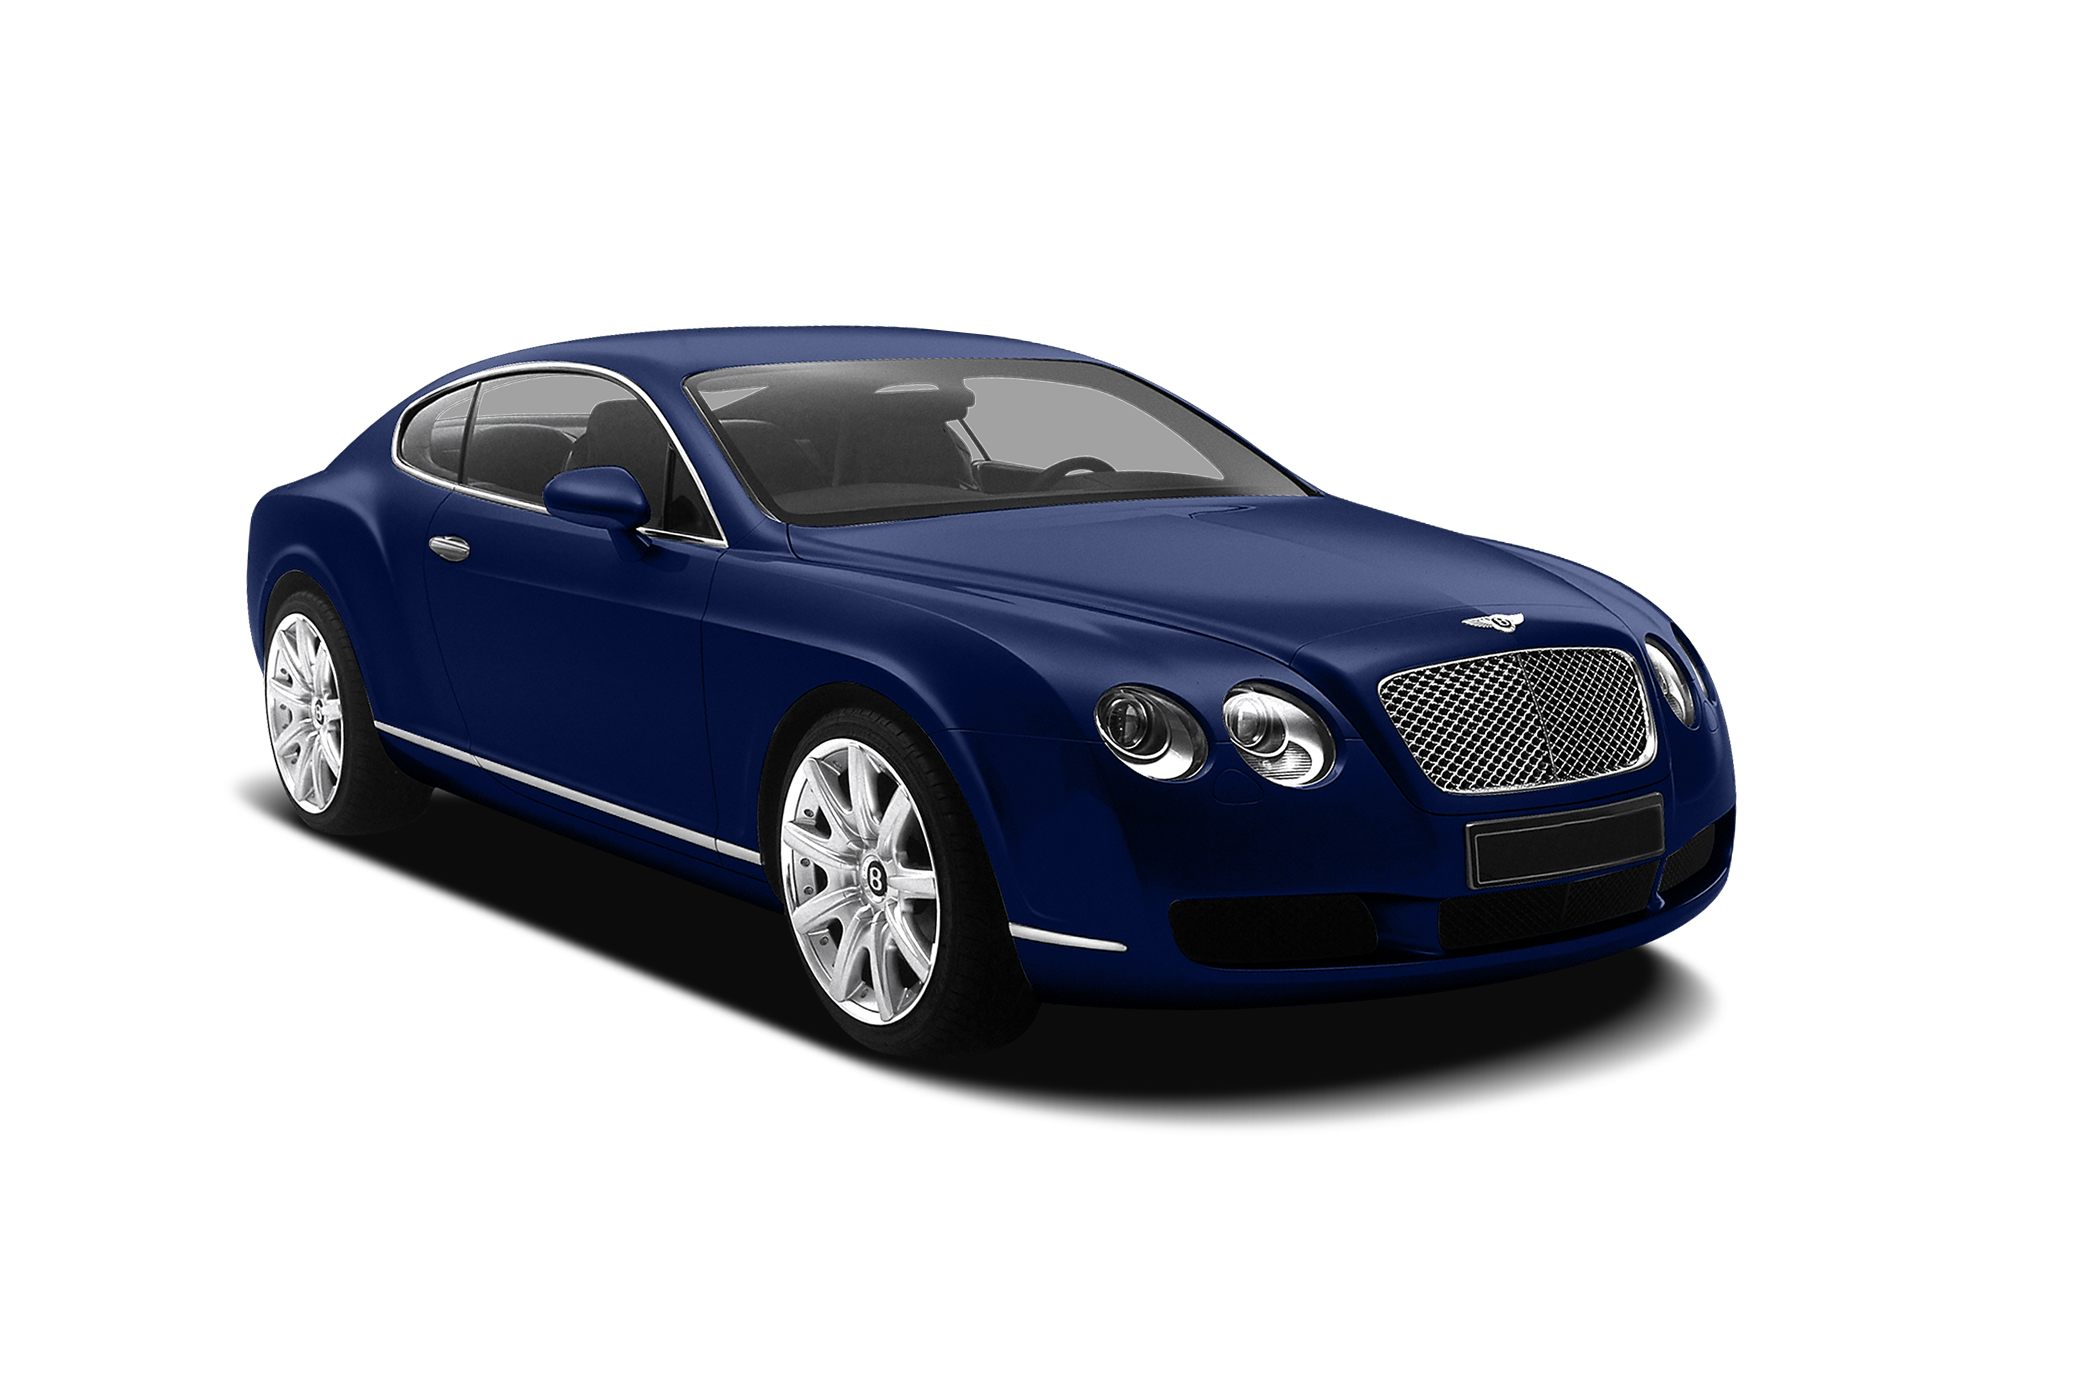 2009 Bentley Continental GT Coupe for sale in Fort Lauderdale for $105,980 with 22,204 miles.